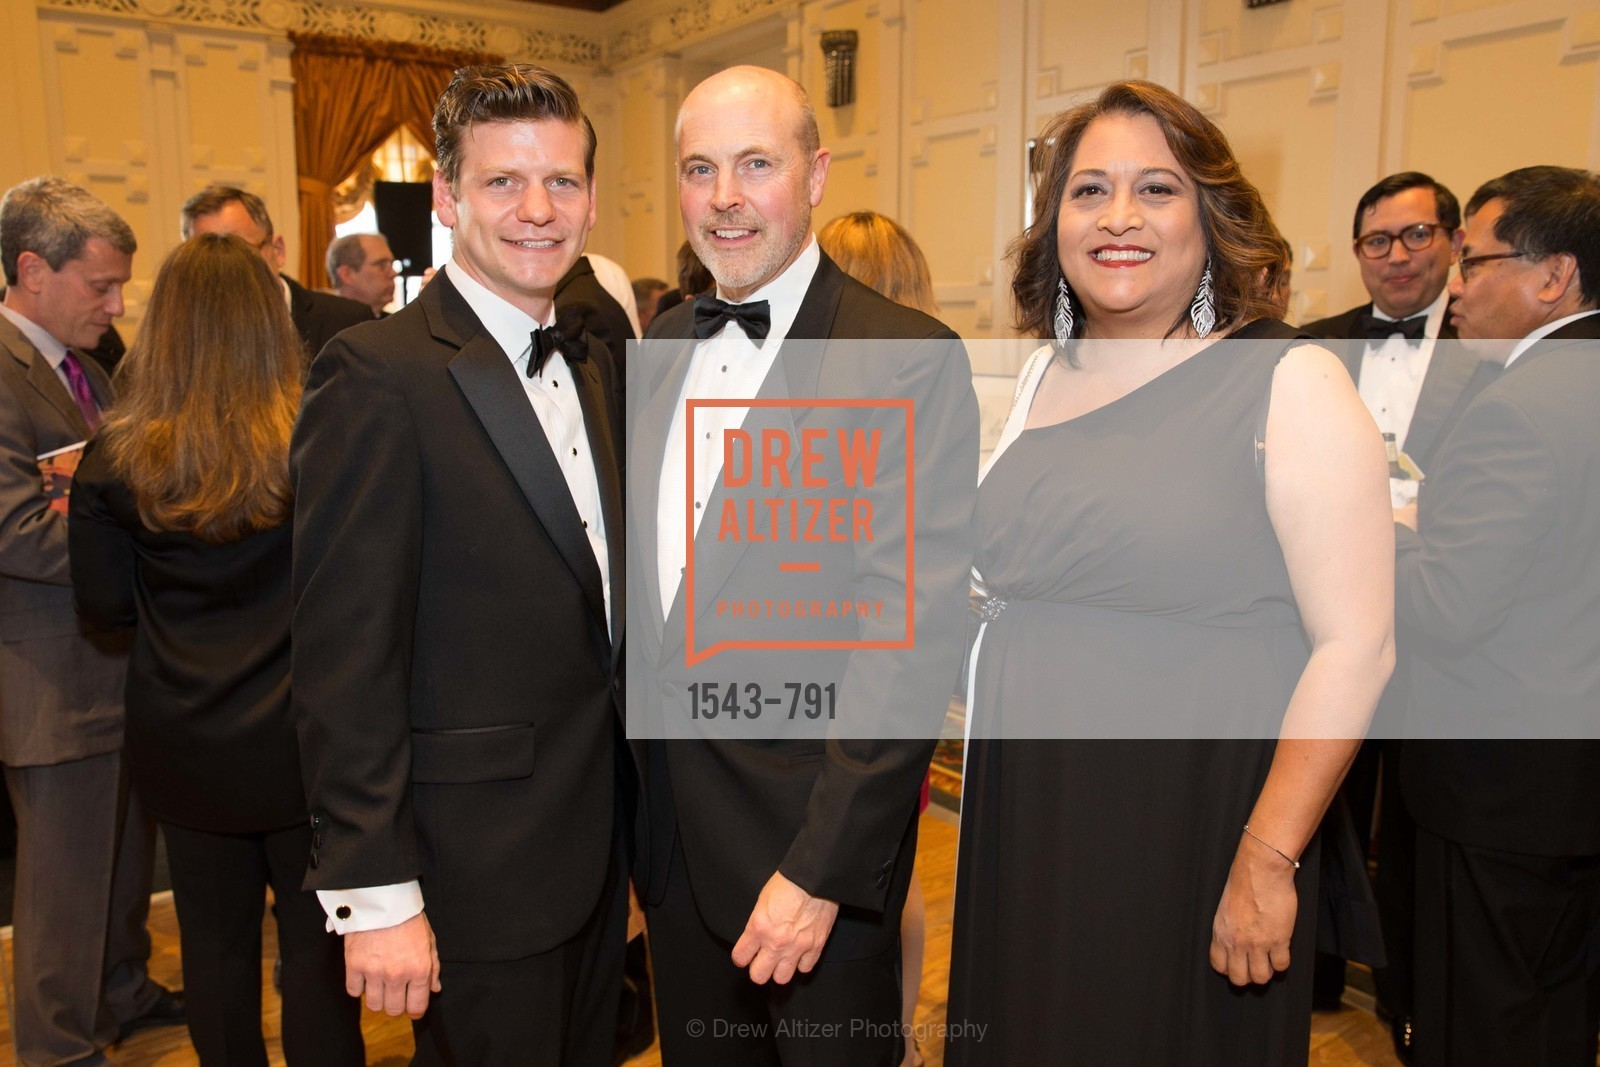 Justin Greving, Chandler McCoy, Julianne Polanco, SAN FRANCISCO HERITAGE Soiree 2015, US, April 19th, 2015,Drew Altizer, Drew Altizer Photography, full-service event agency, private events, San Francisco photographer, photographer California